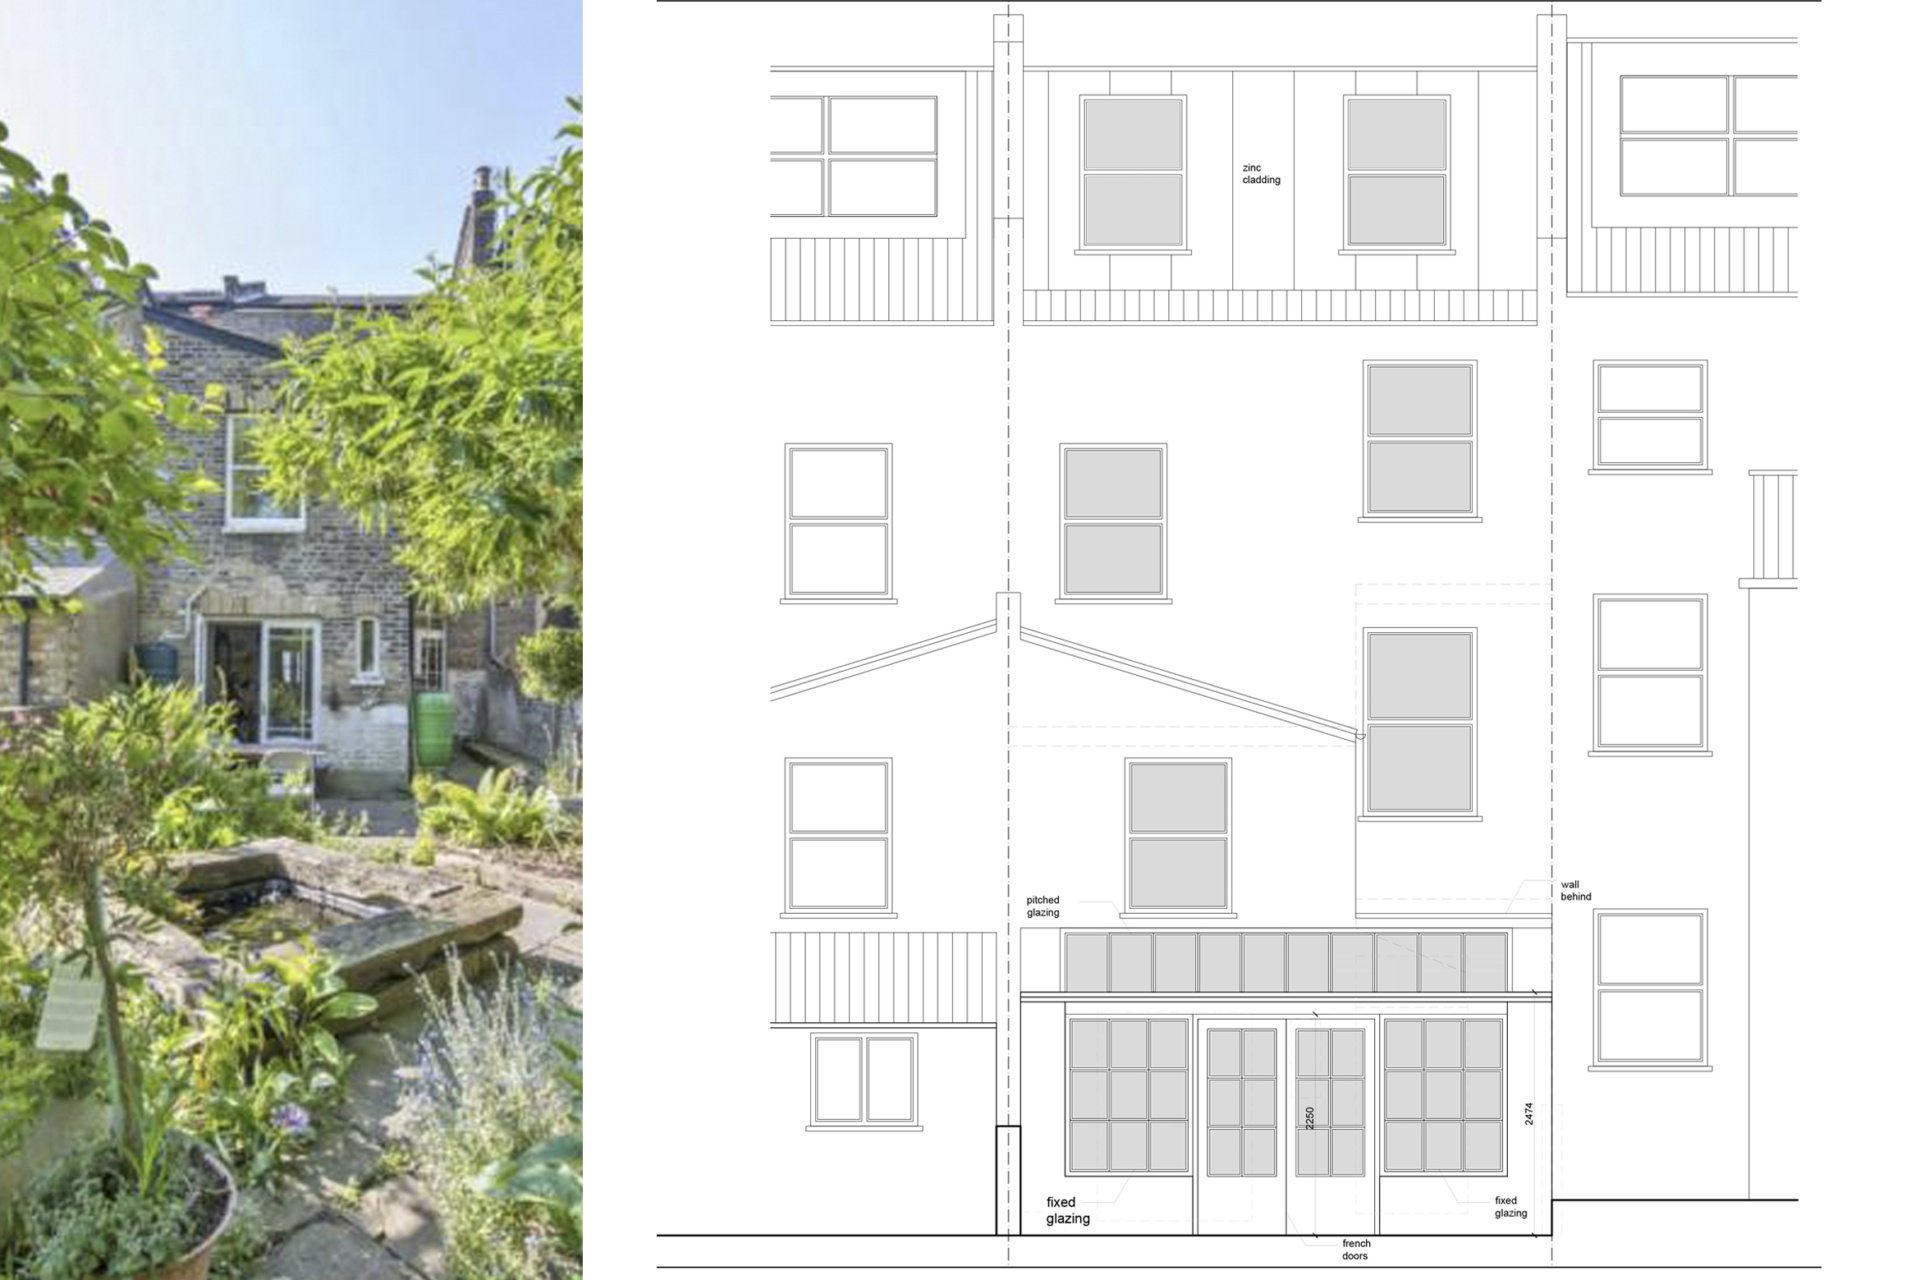 Architect designed kitchen and roof house extension Arsenal Islington N5 Rear elevation 1 Arsenal, Islington N5 | Kitchen and roof house extension